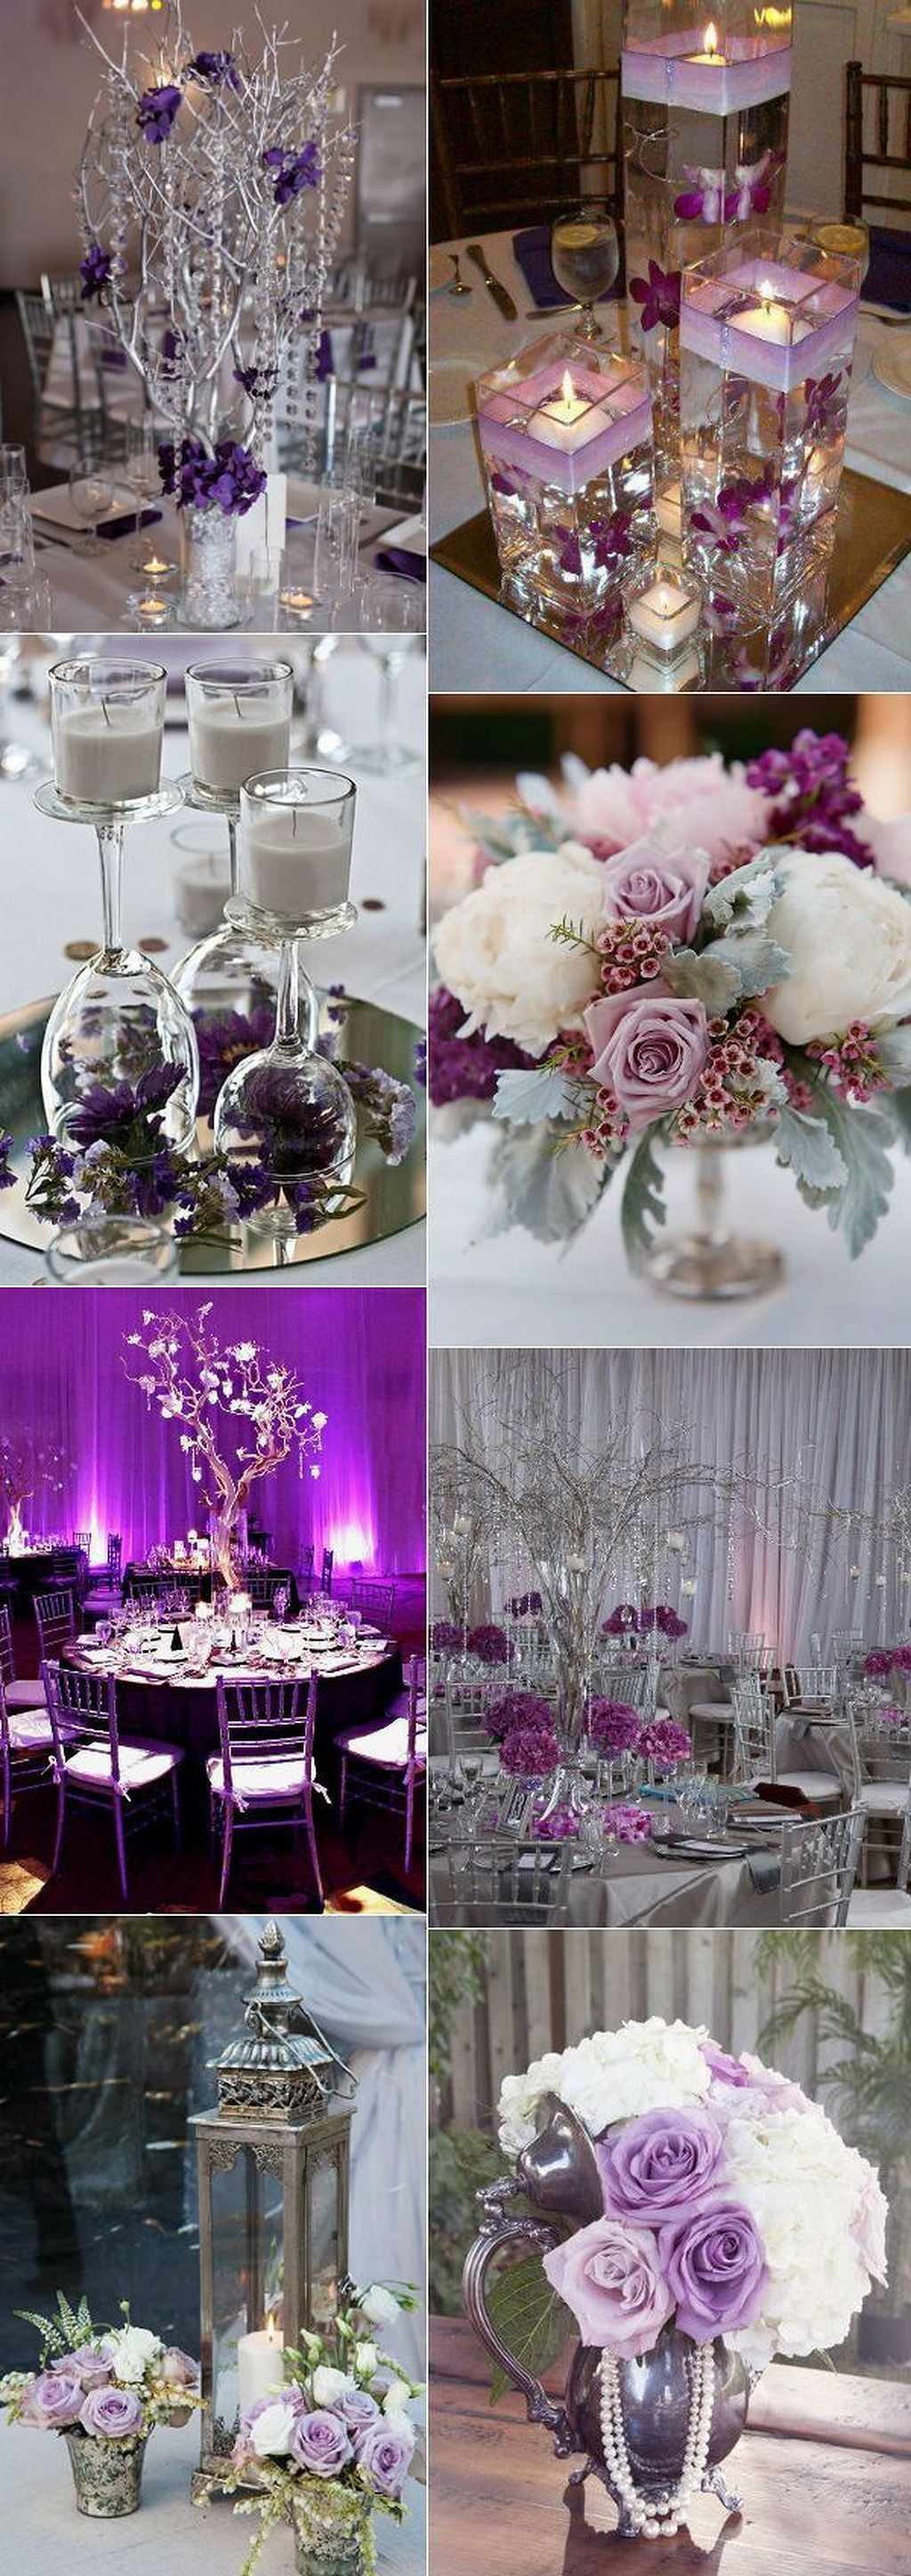 Plum Purple And Grey Elegant Wedding Color Ideas 8